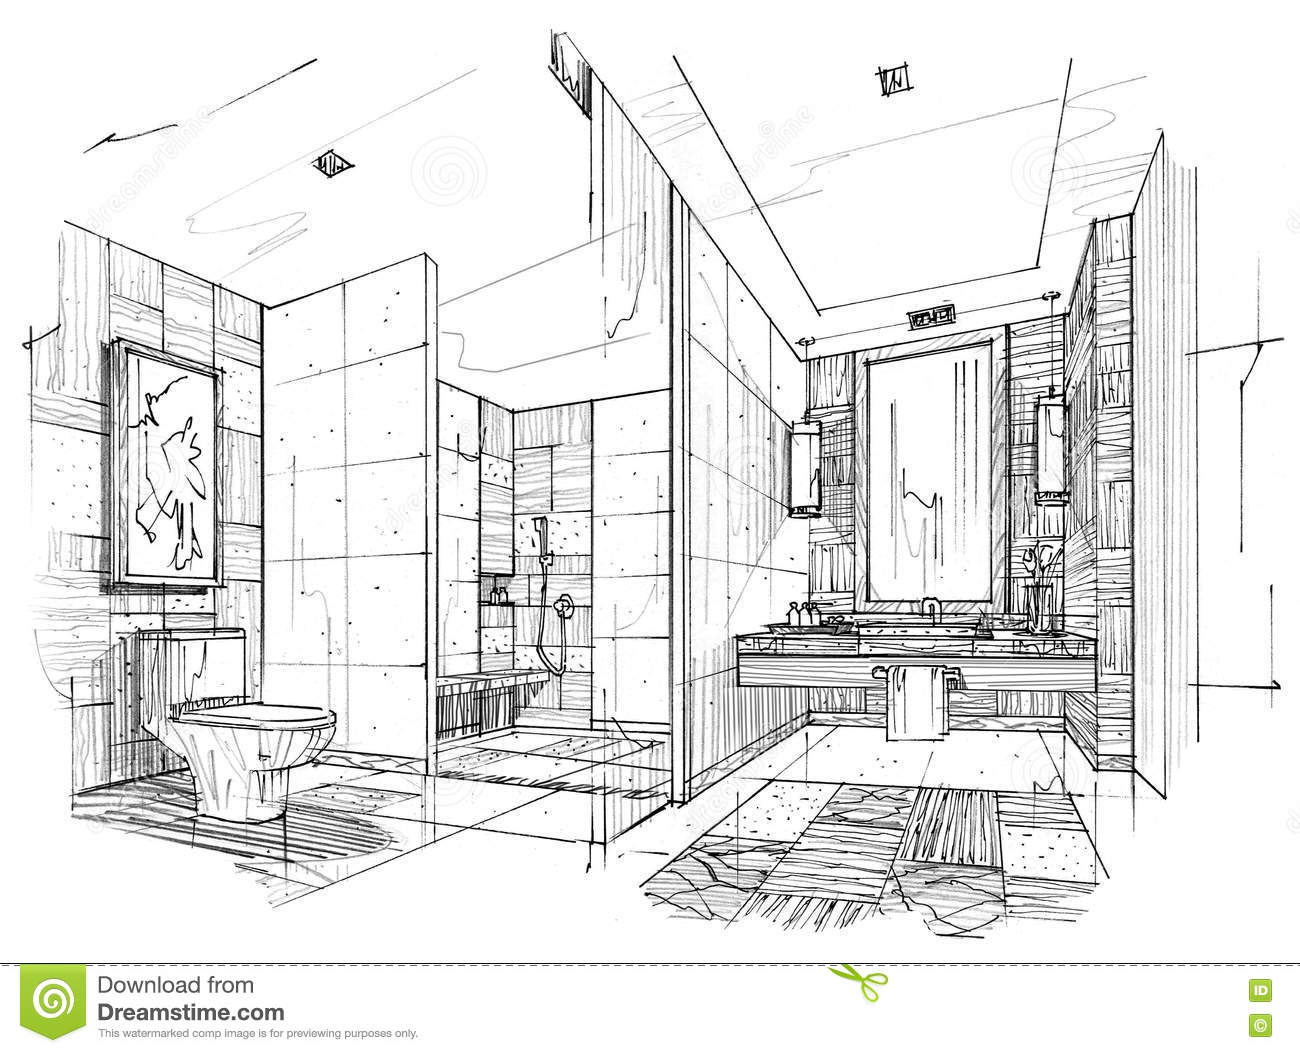 Bathroom perspective drawing - Sketch Interior Perspective Toilet Bathroom Black And White Interior Design Royalty Free Stock